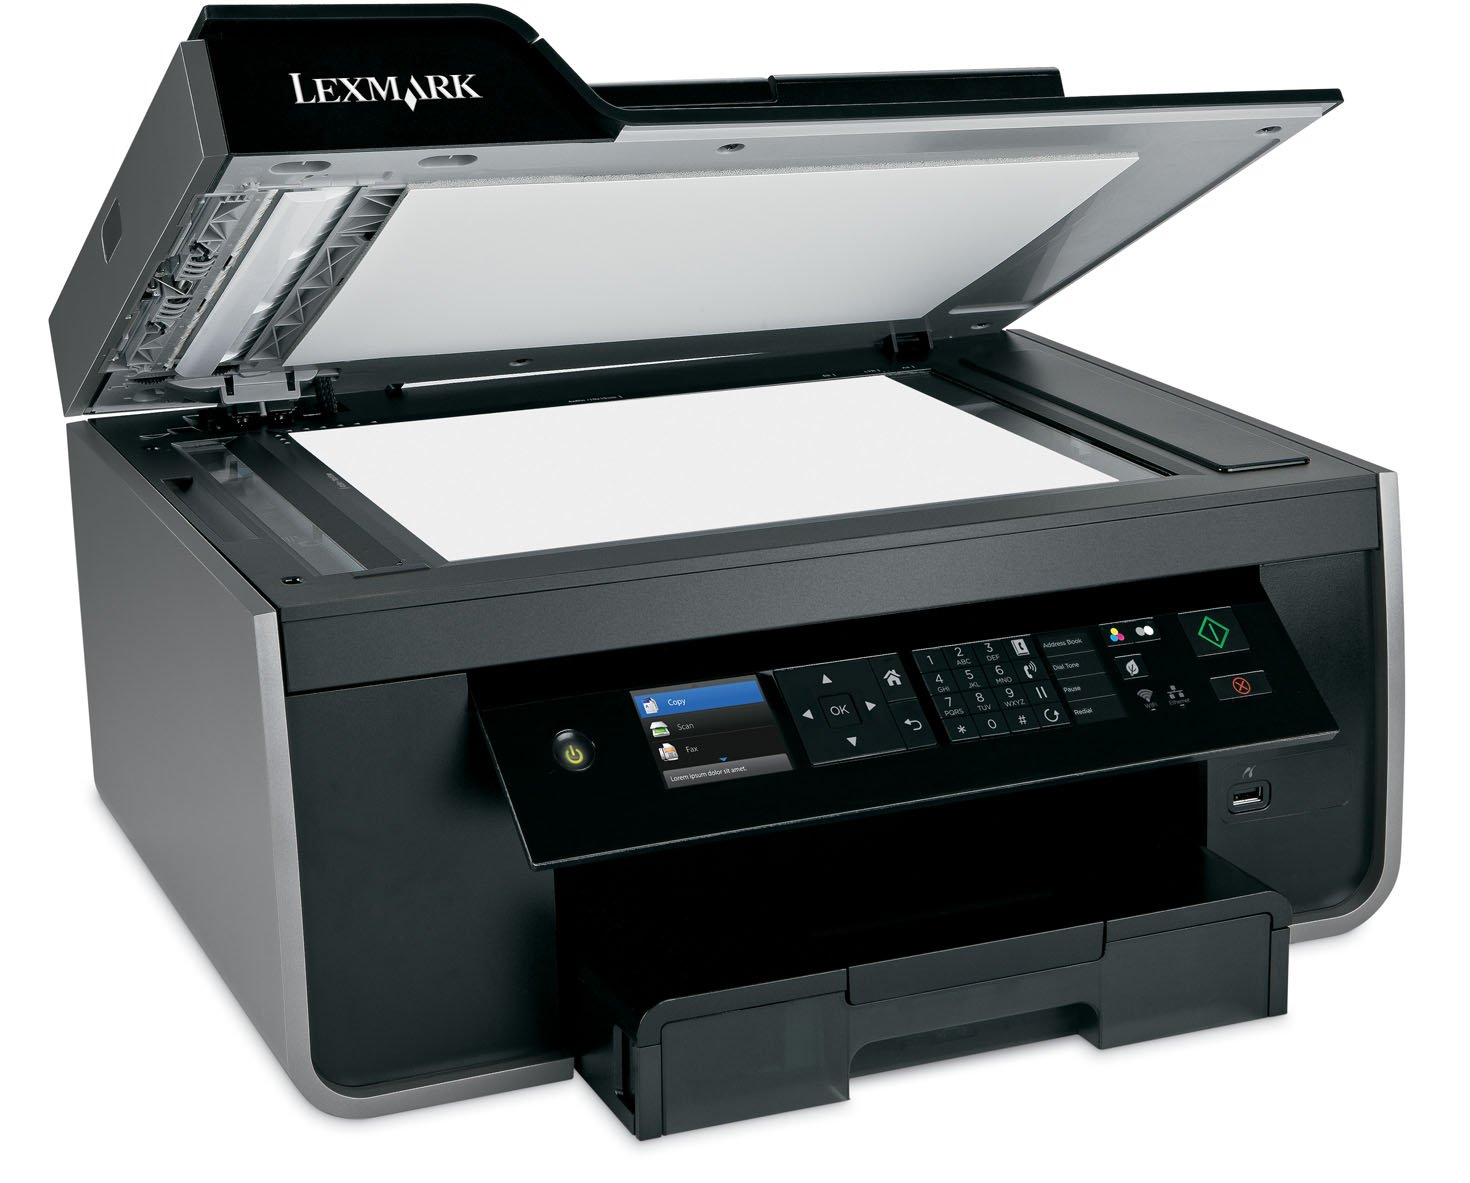 LEXMARK PRO715 PRINTER 64BIT DRIVER DOWNLOAD